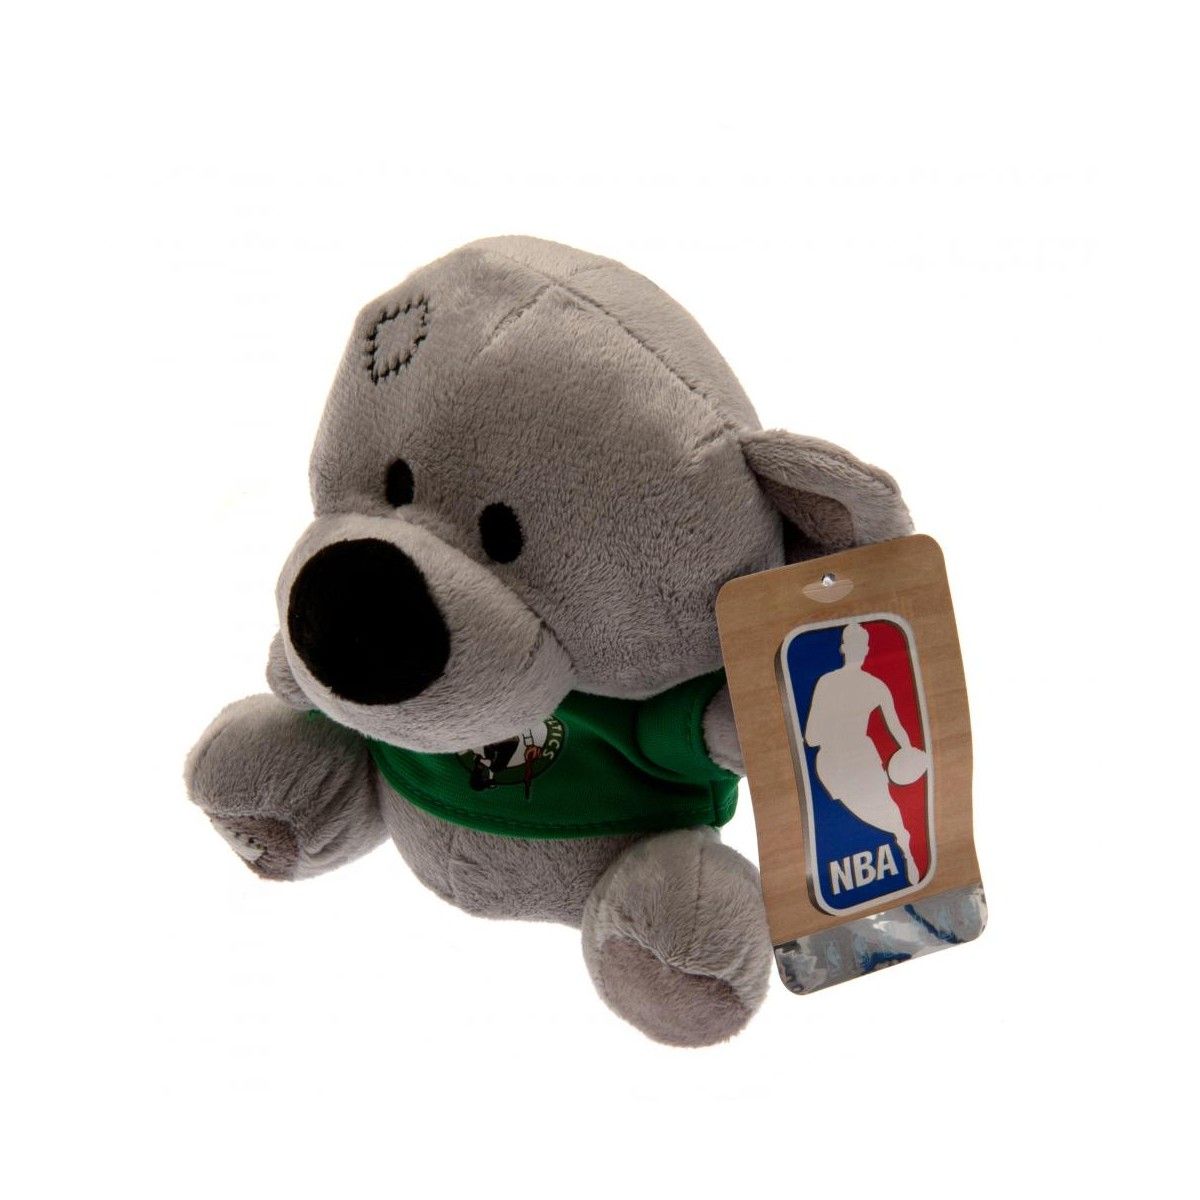 Mascotte Forever Orso Timmy Nba Boston Celtics Fan Gadget